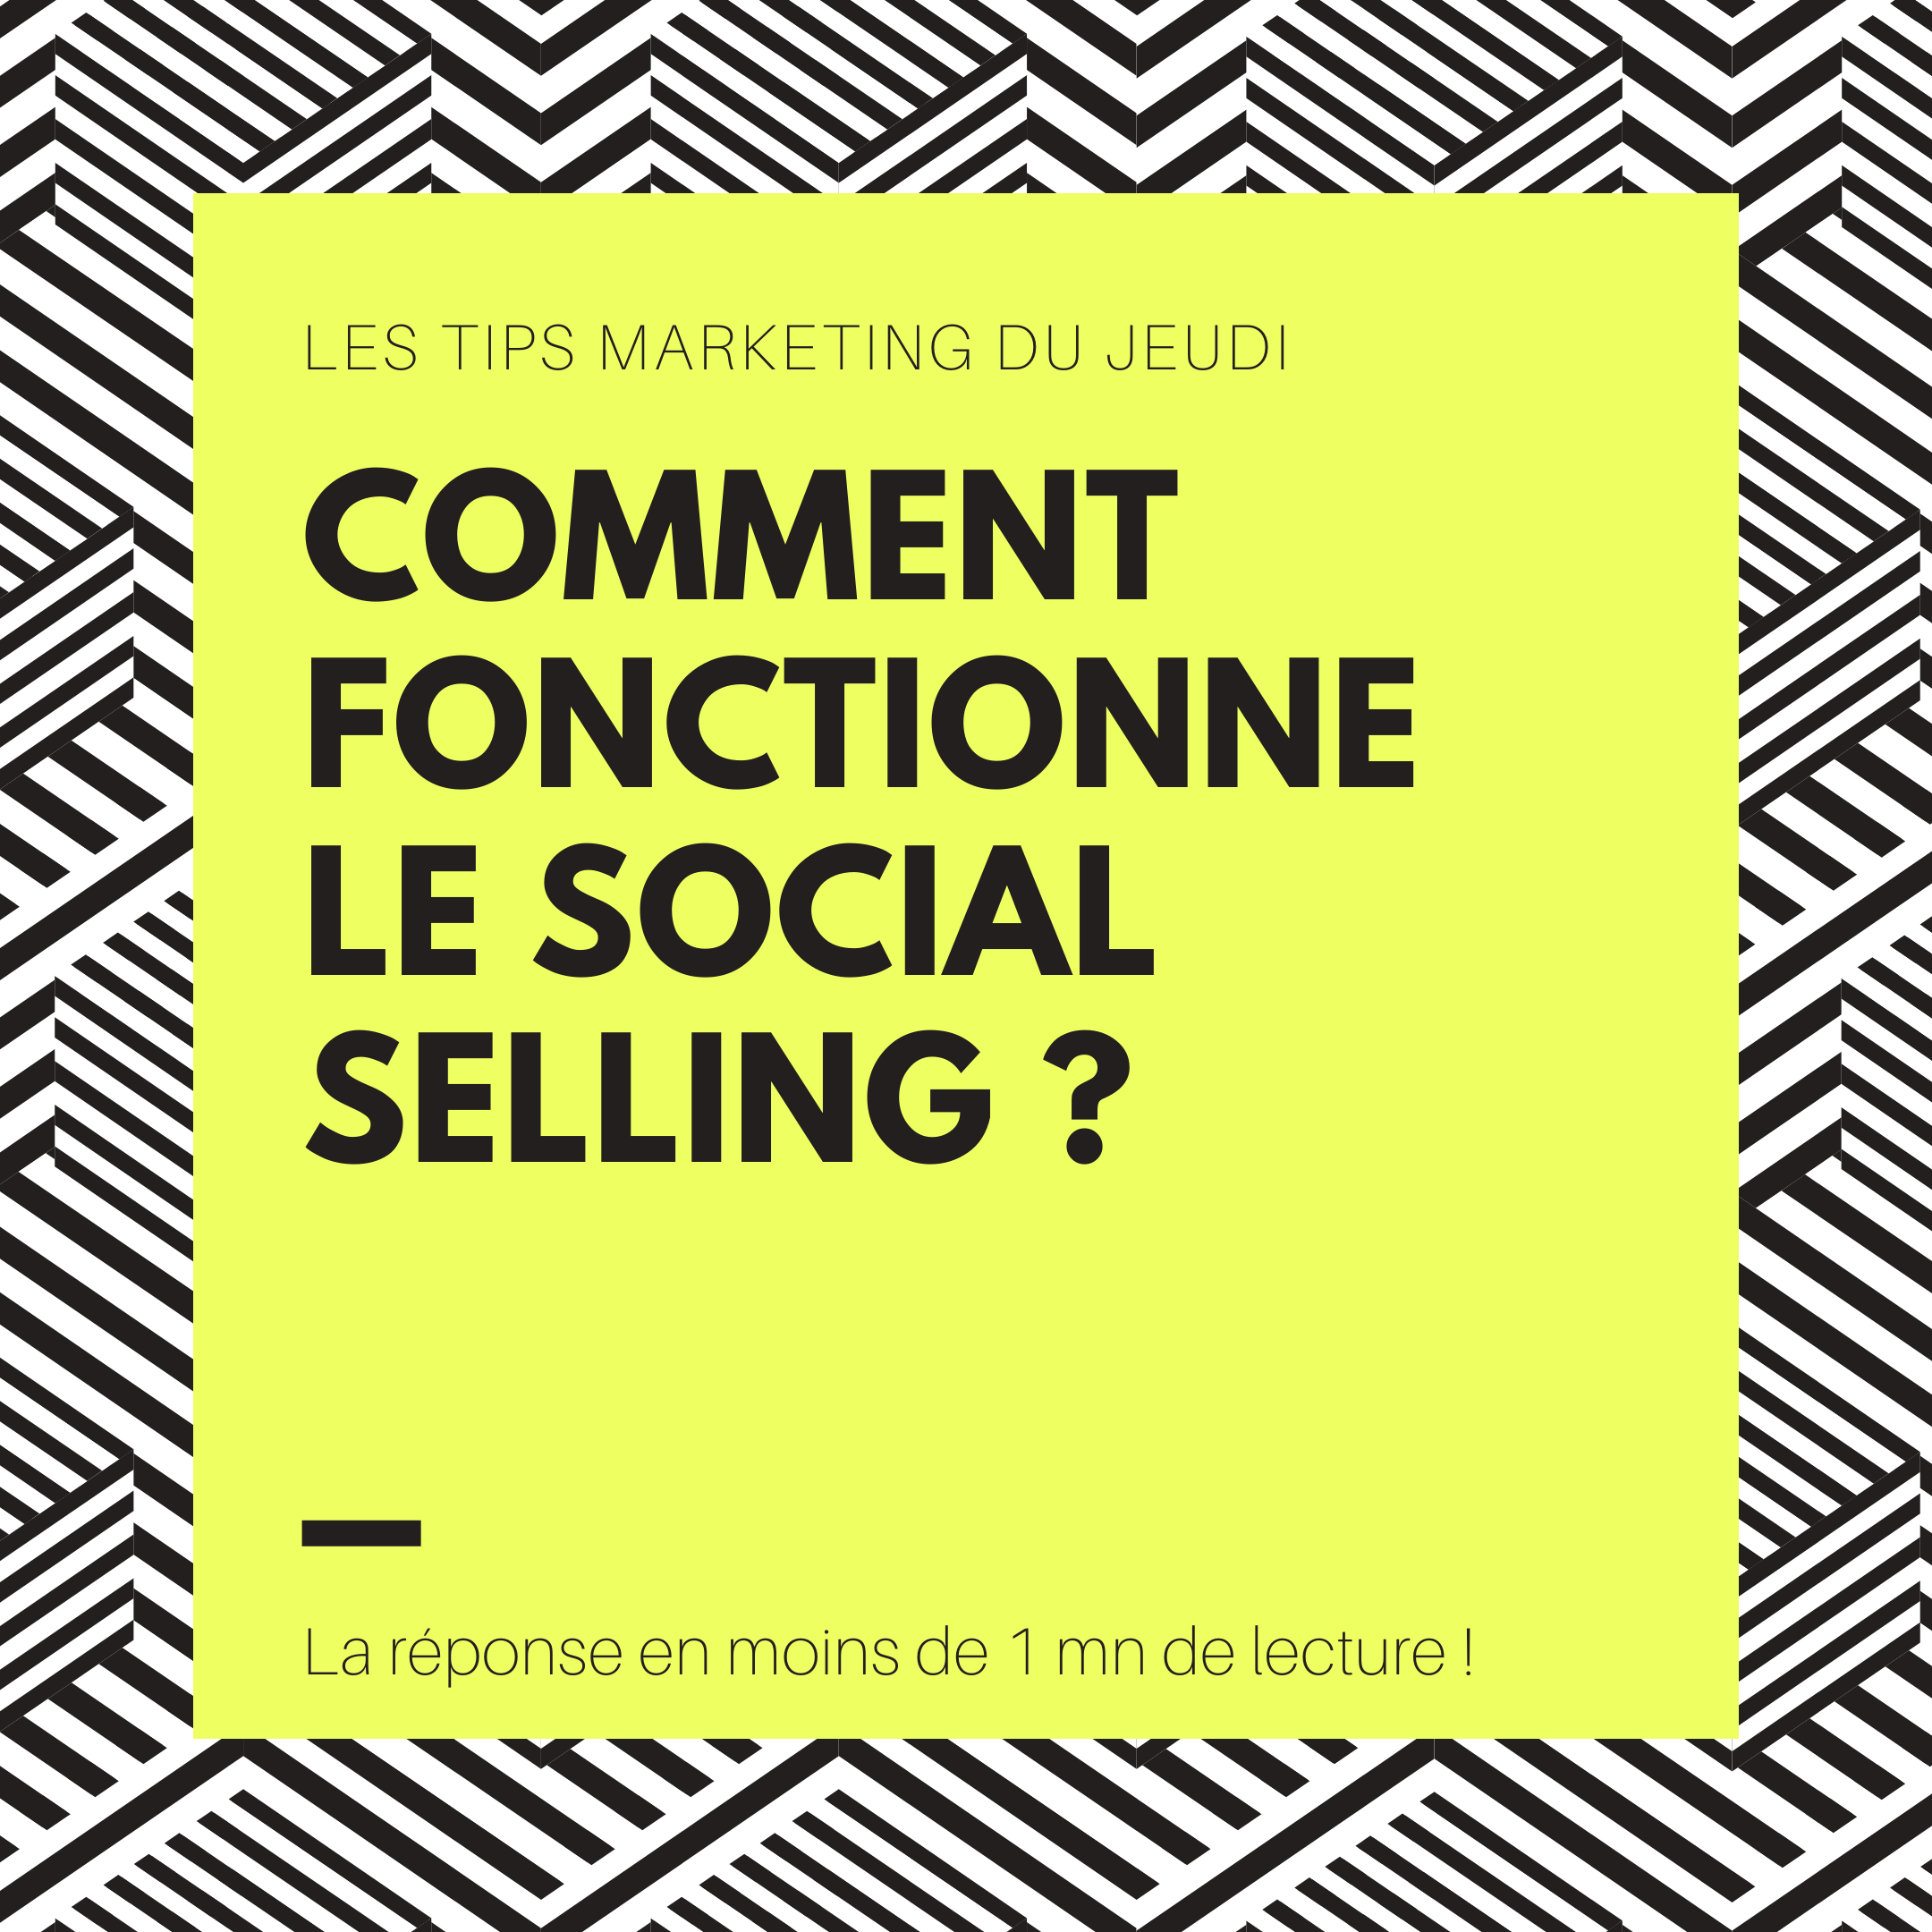 Tips Marketing Du Jeudi – Comment Fonctionne Le Social Selling ?